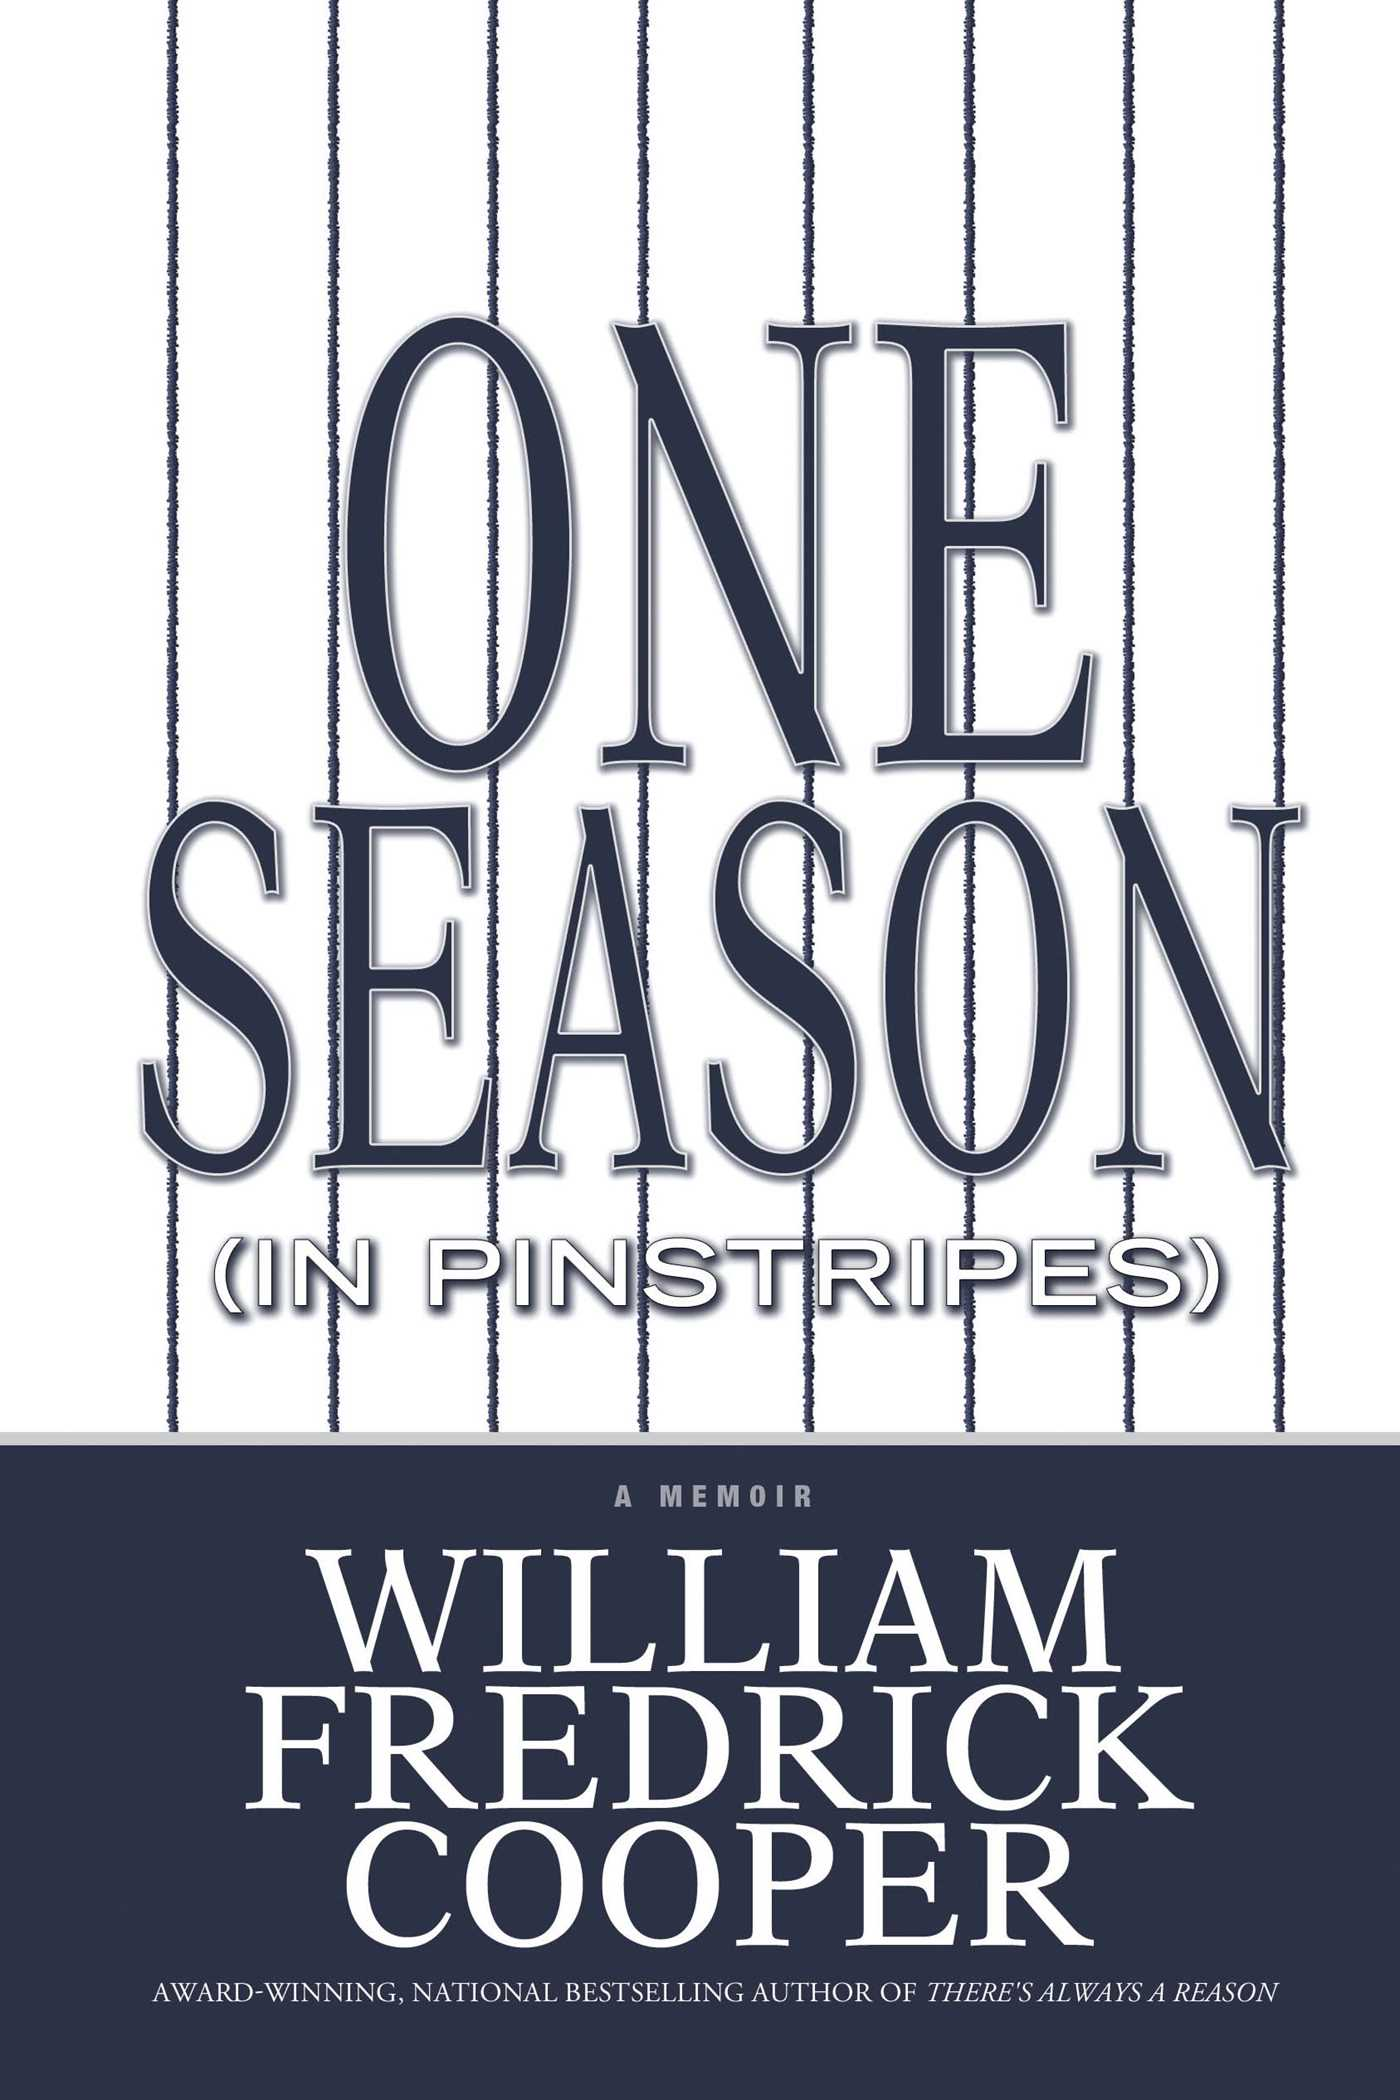 One-season-in-pinstripes-9781451608014_hr